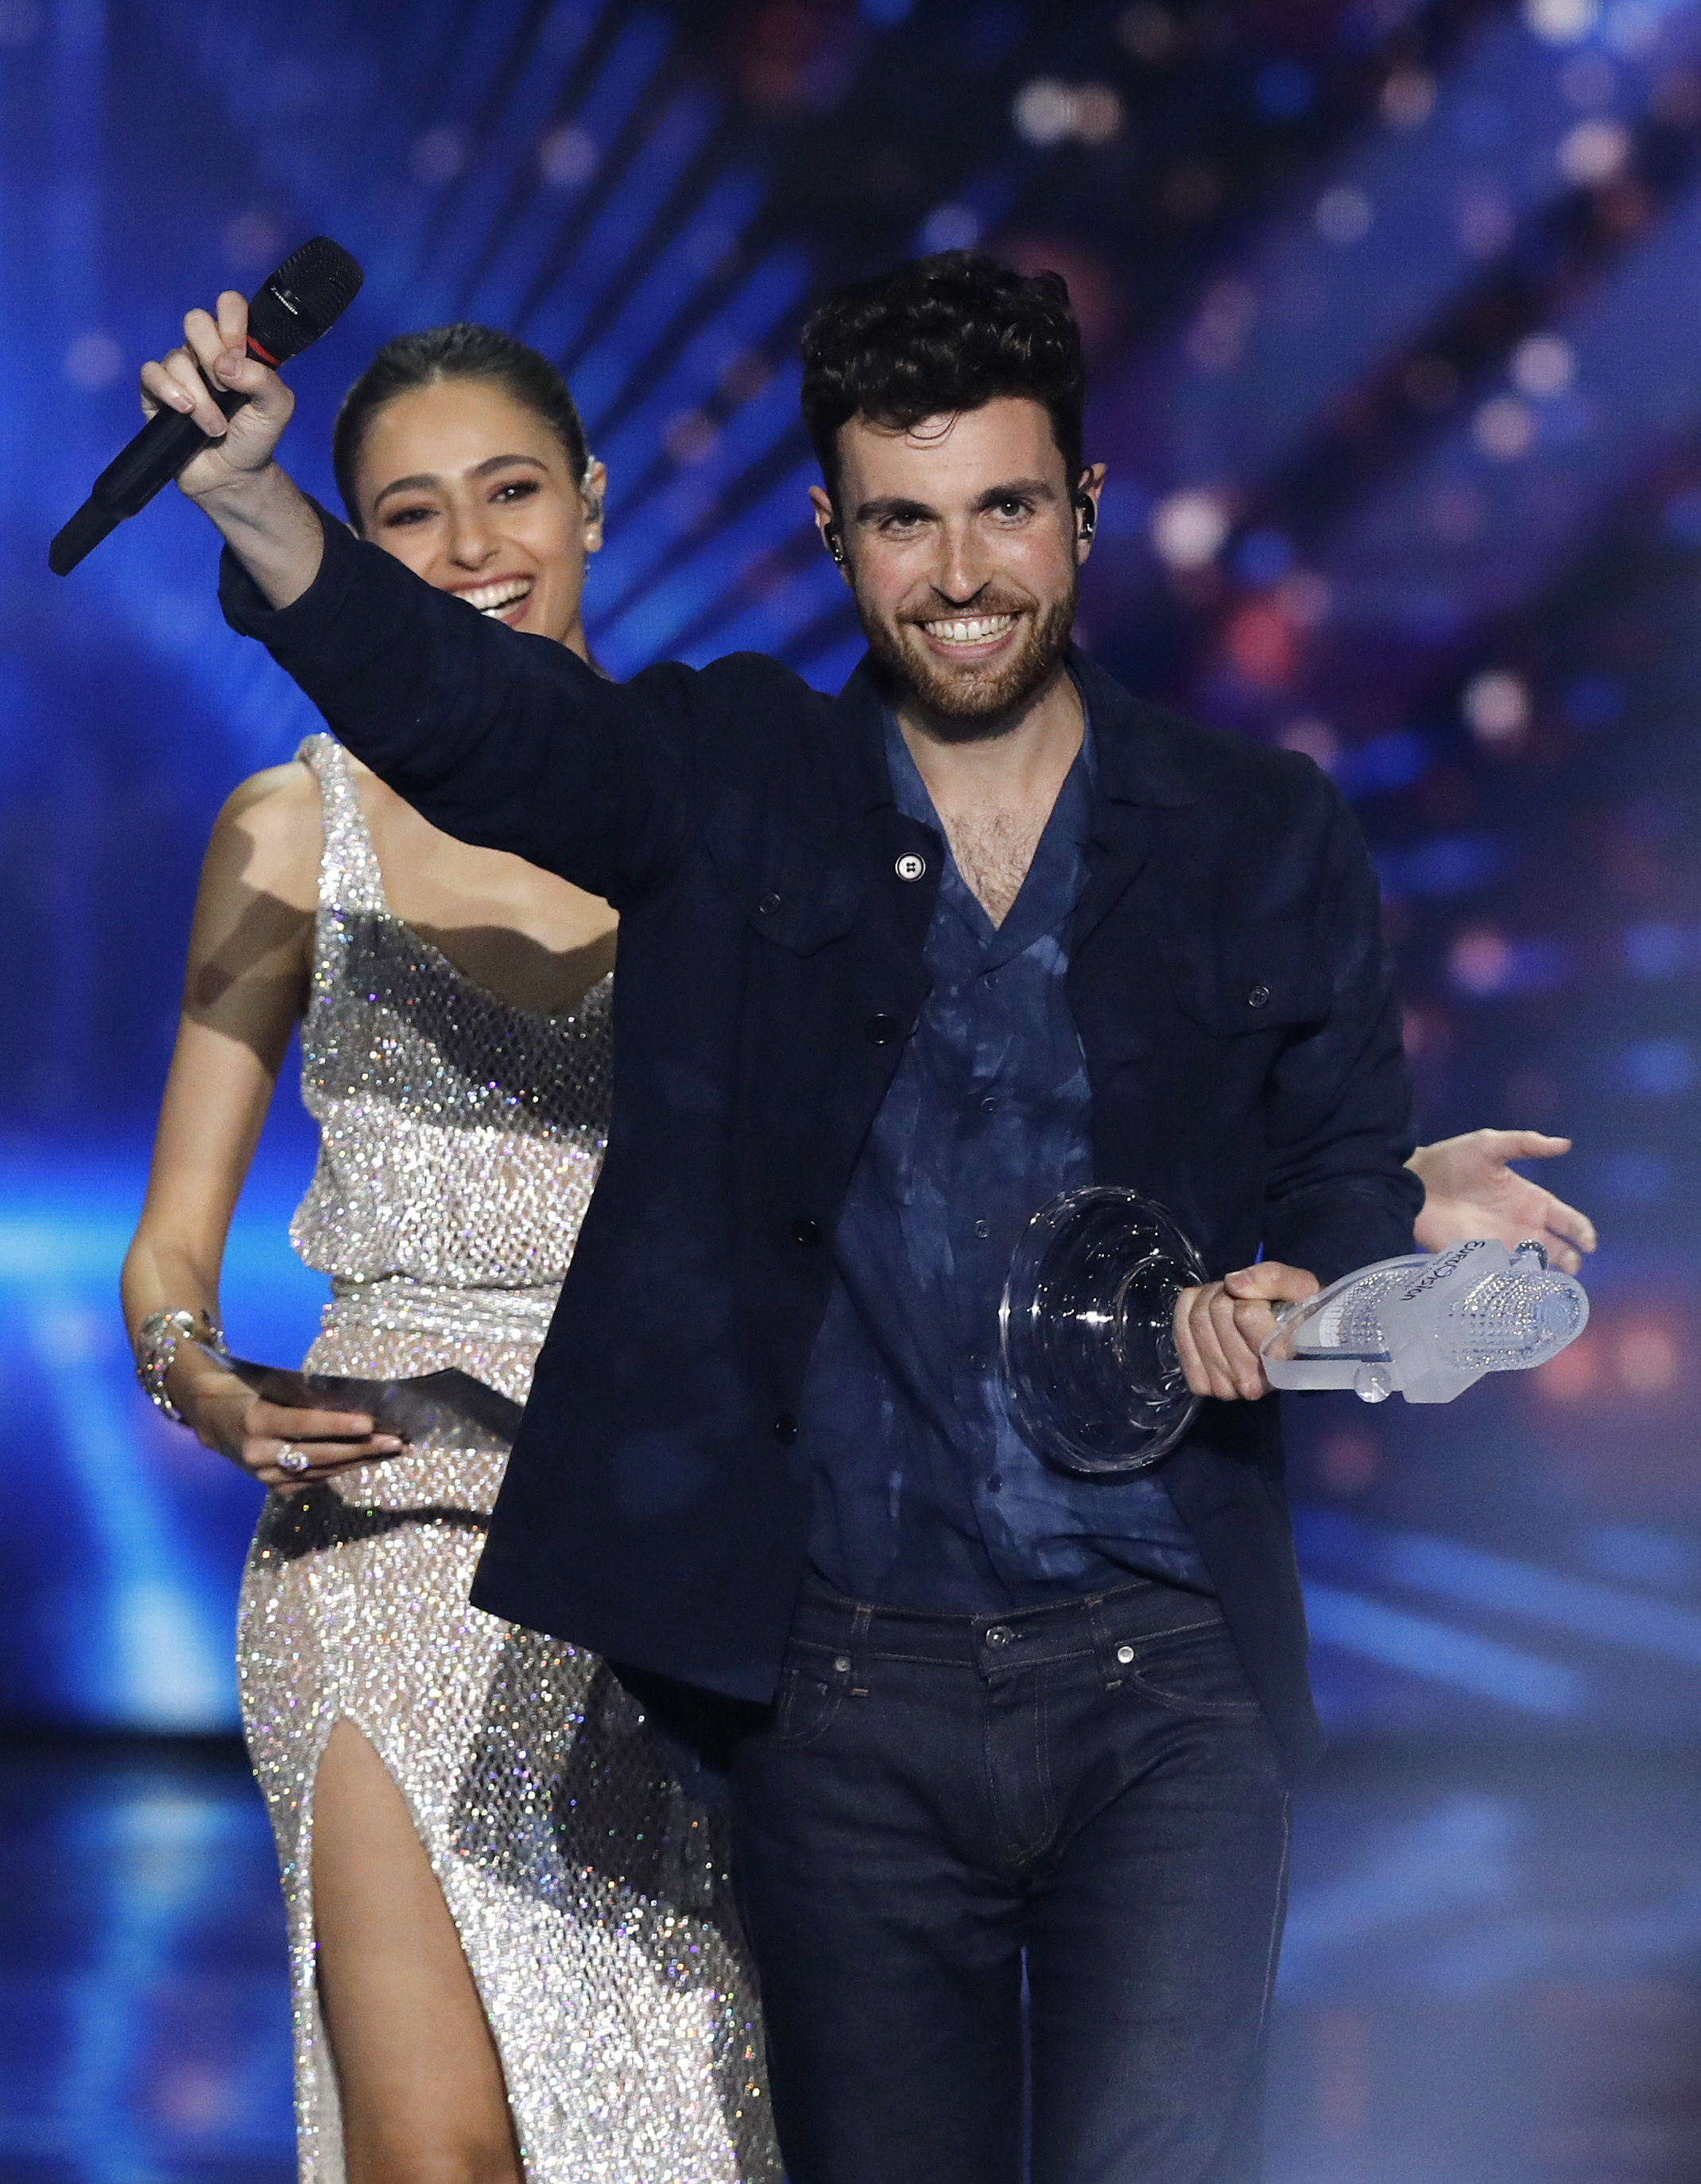 """Duncan Laurence of the Netherlands is watched by presenter Lucy Ayoub, left, as he holds the trophy after winning the 2019 Eurovision Song Contest grand final with the song """"Arcade"""" in Tel Aviv, May 18, 2019."""